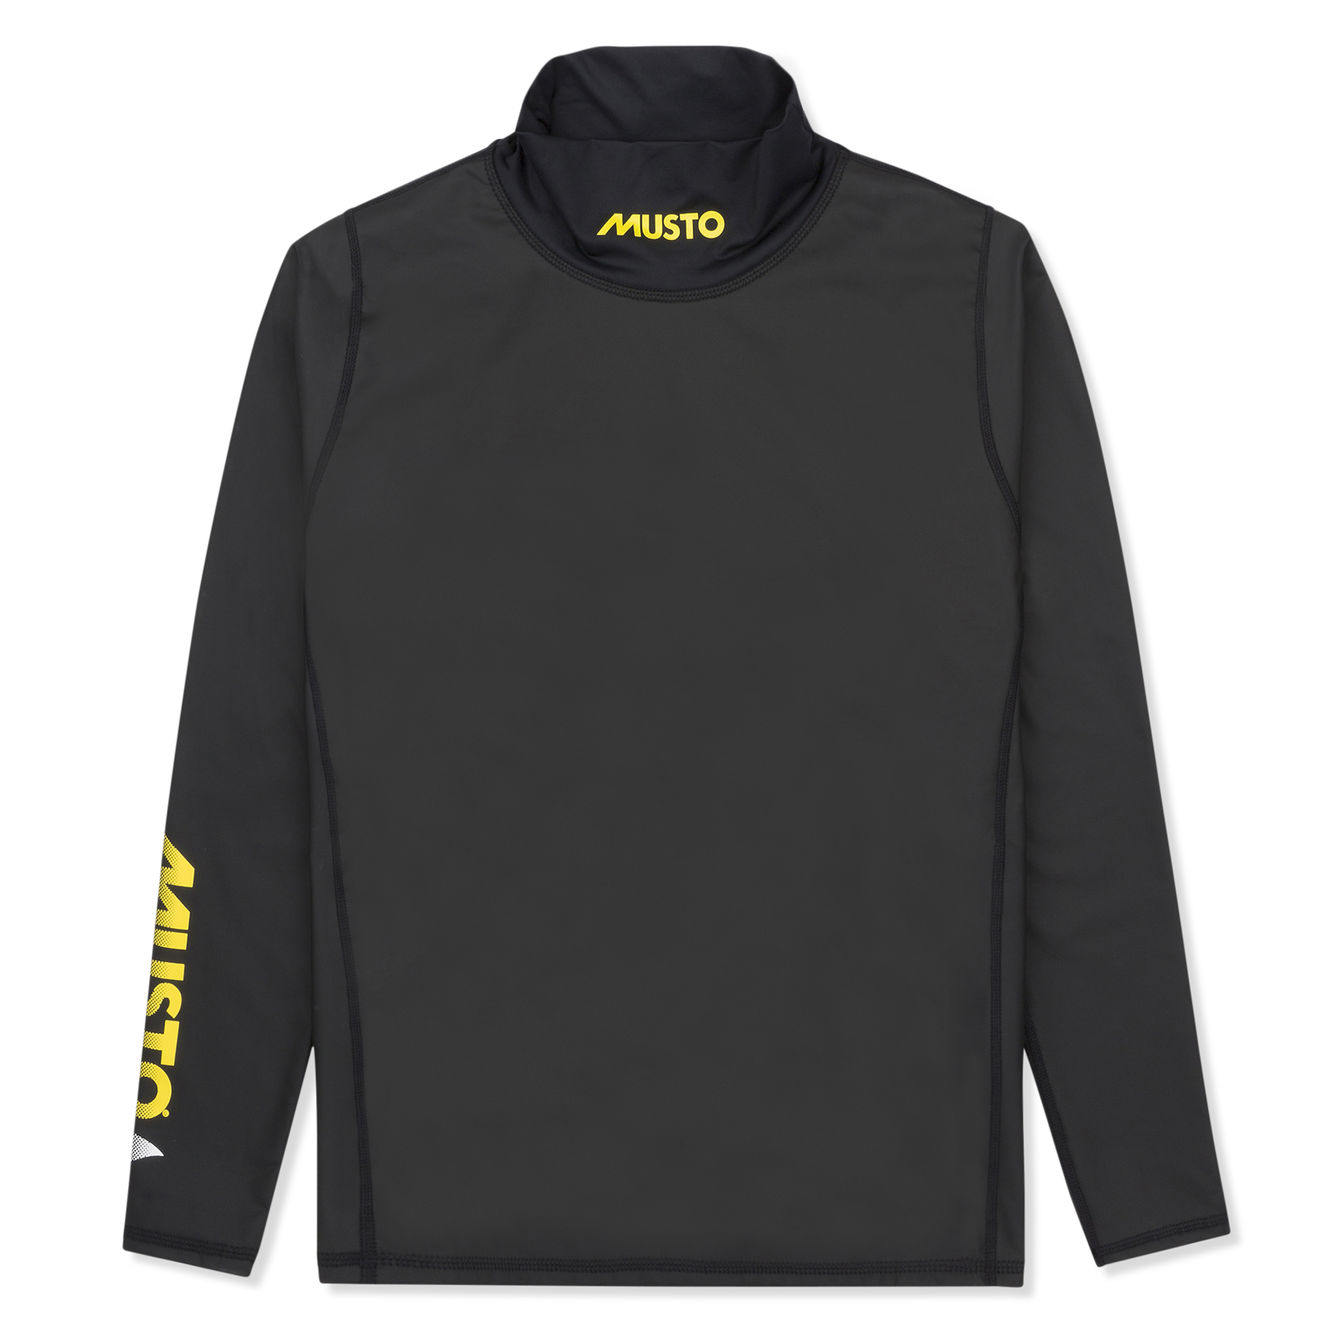 YOUTH CHAMP AQUA LS TOP